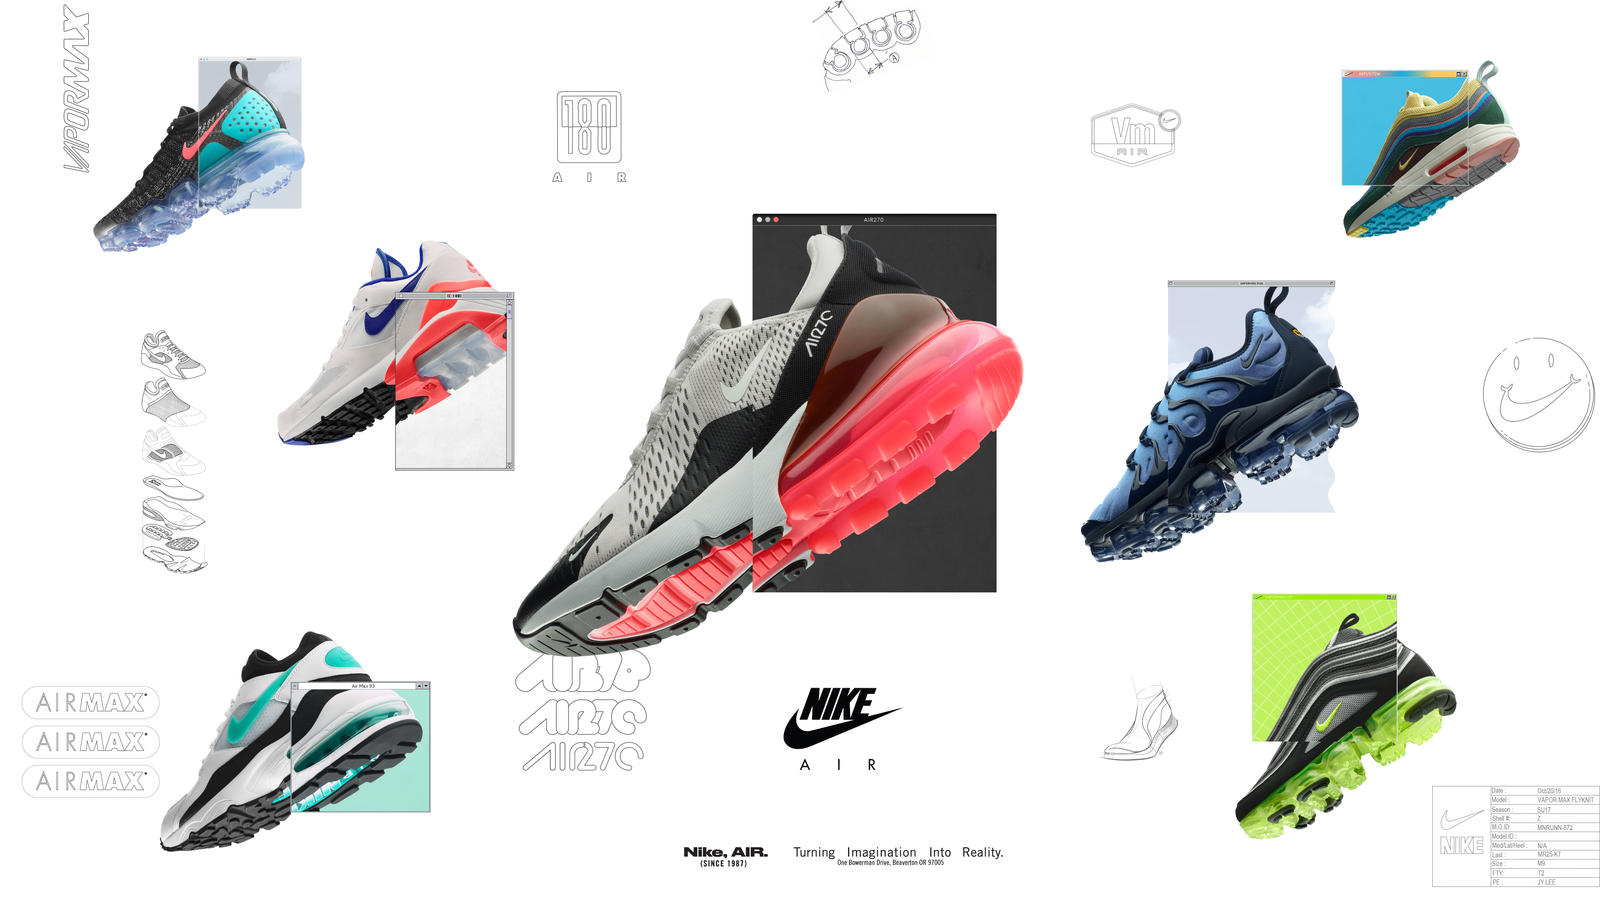 From top left Nike VaporMax Flyknit 2.0, Nike Air Max 93, Nike Air Max  180, Nike Air Max 270, Nike VaporMax Plus, Nike Air VaporMax 97 and Air Max  197 ...